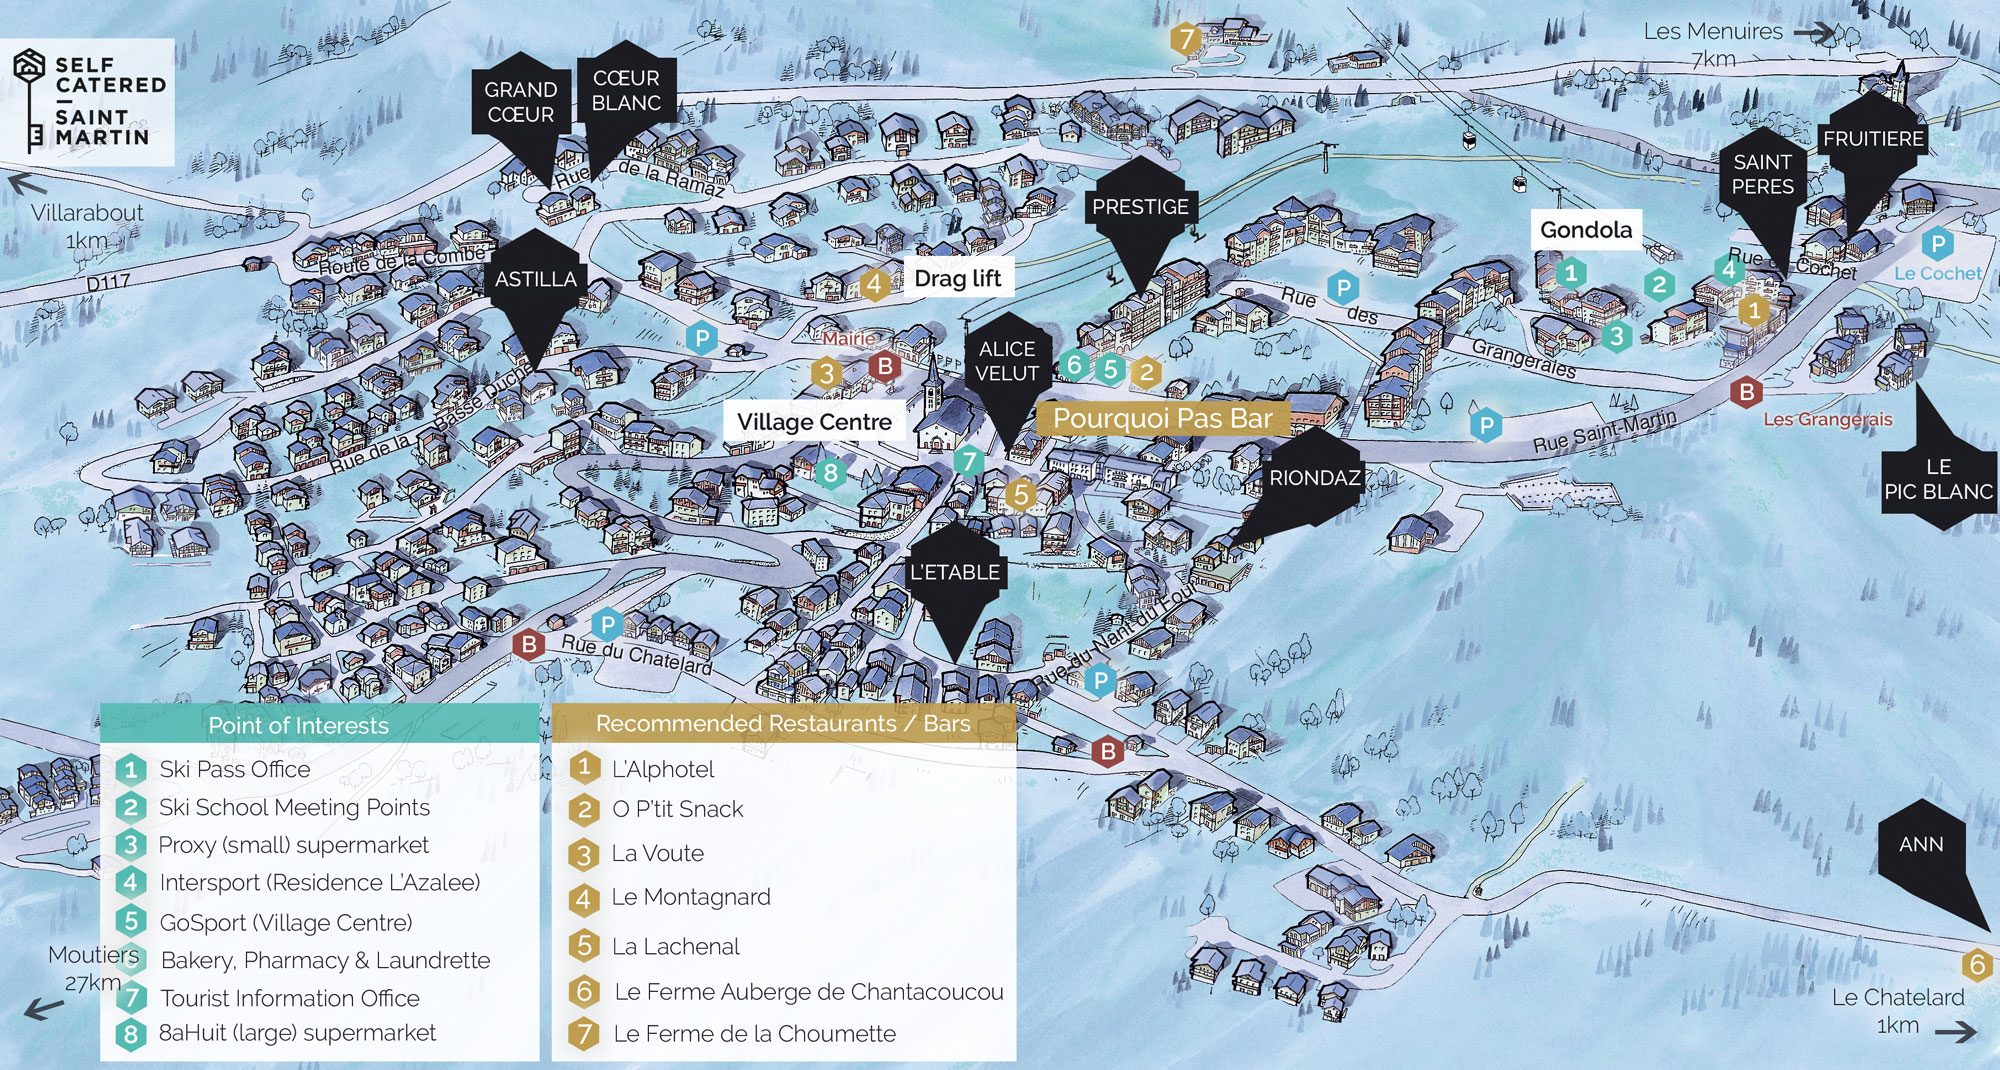 Village resort map of St Martin de Belleville (3 Valleys) showing all ski chalets and apartments of Self Catered - Saint Martin